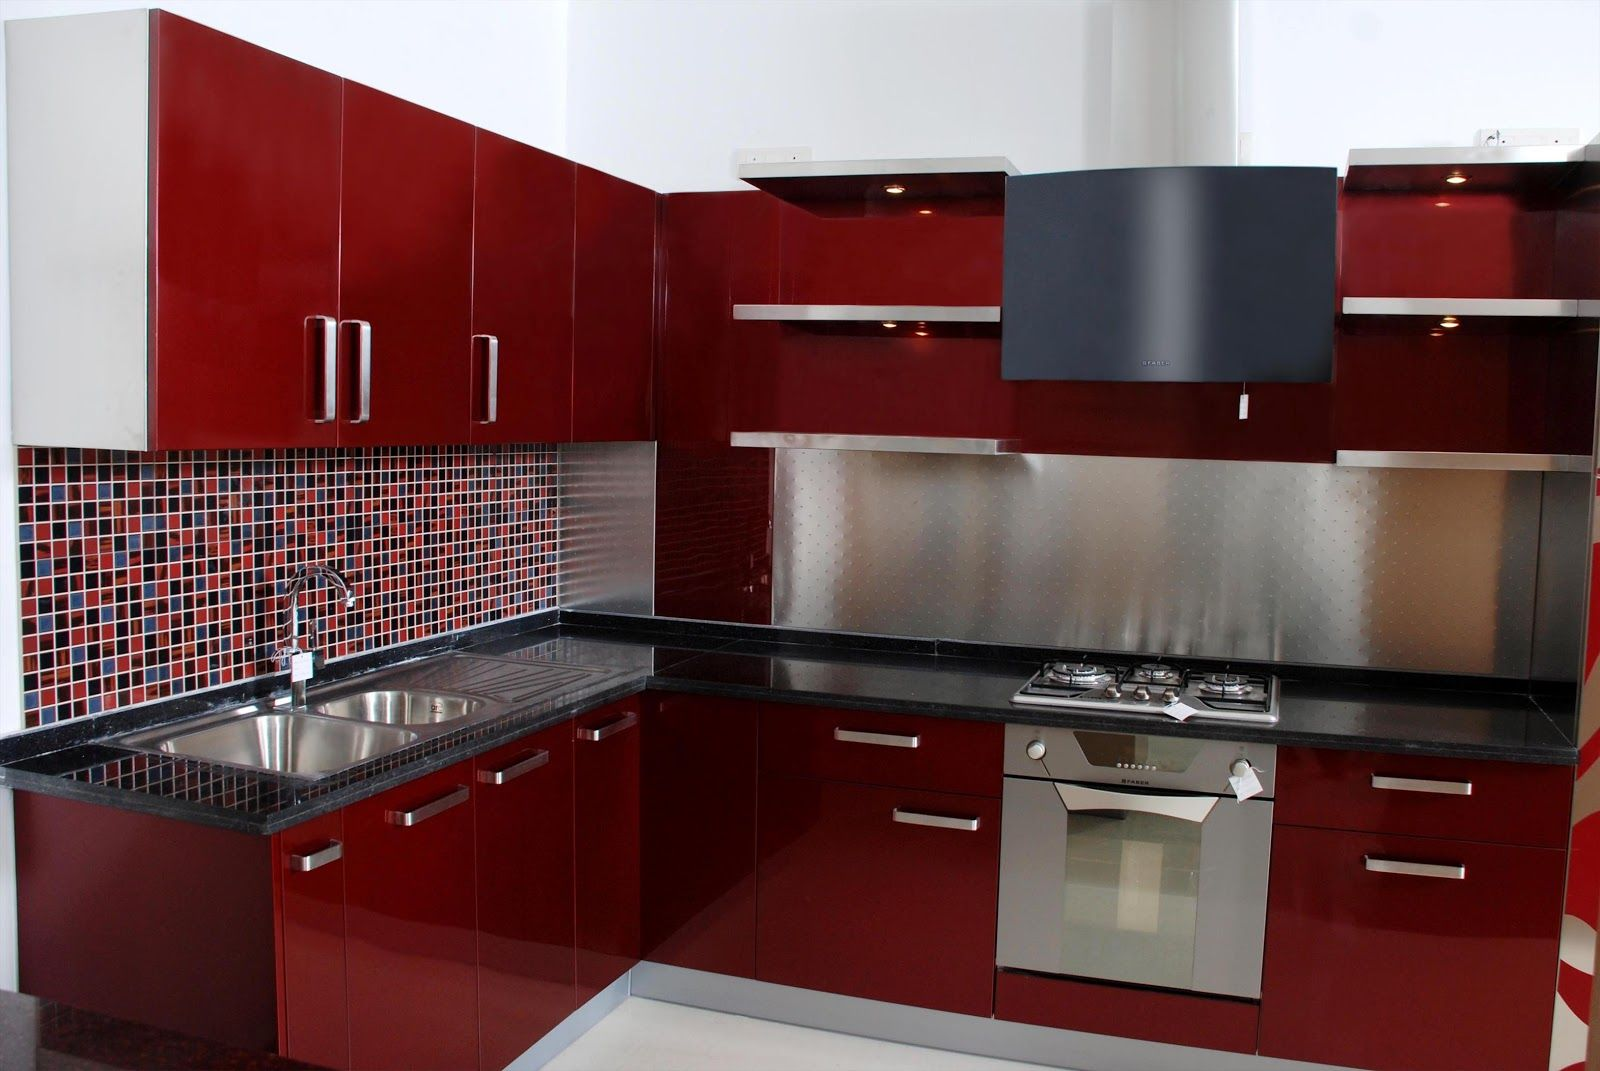 Parallel Kitchen Design India Google Search Kitchen Pinterest Kitchen Design Kitchens